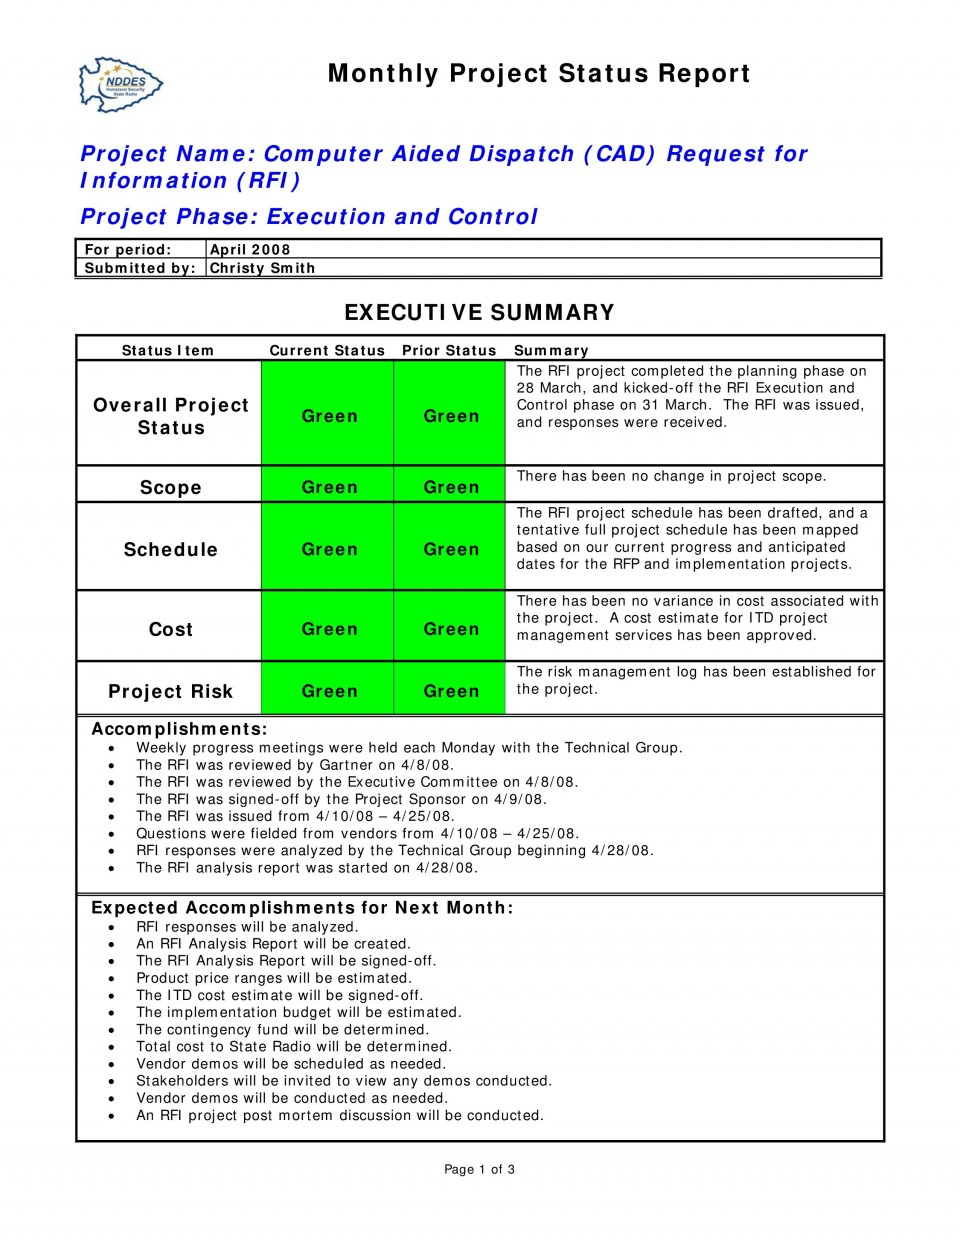 003 Wondrou Project Statu Report Template Design  Example Pdf Powerpoint Monthly960